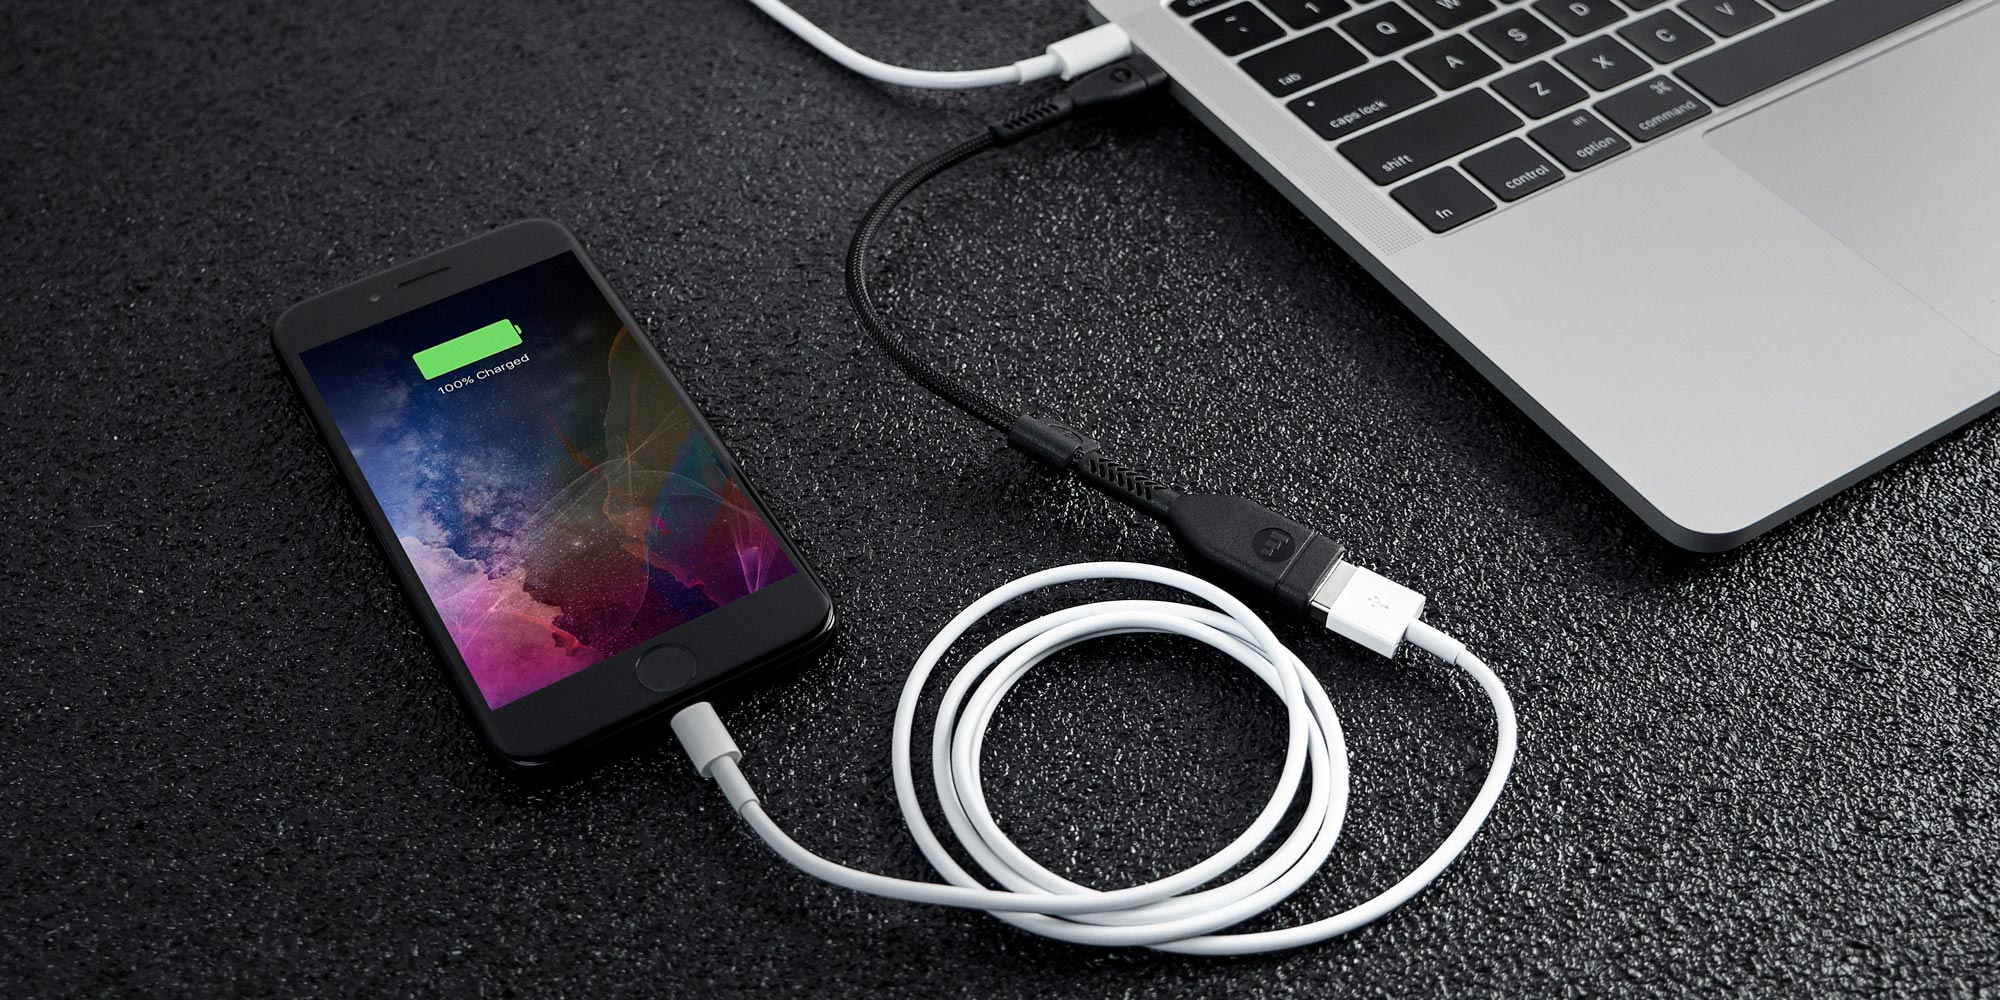 A phone plugged into a PRO adapter switching USB-C to USB-A 1 to charge from a computer